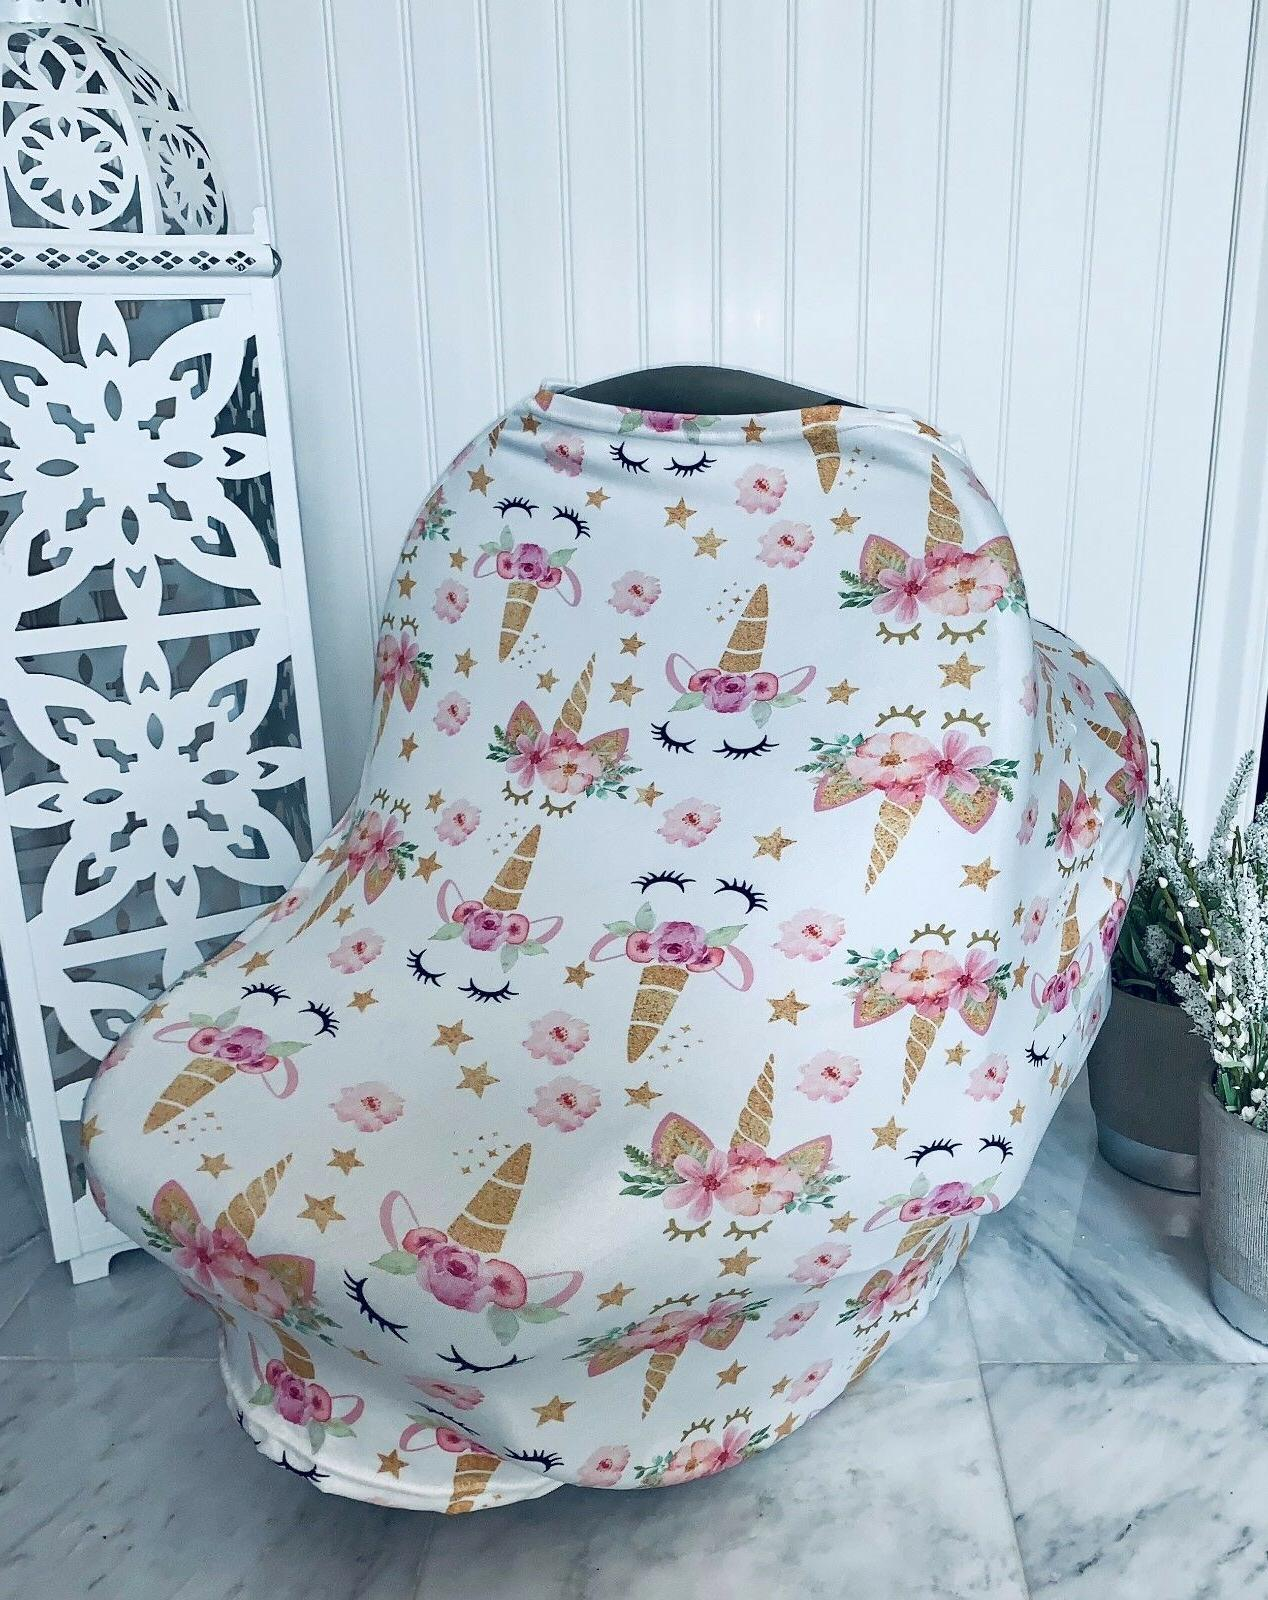 Stretchy Use Seat Canopy, Cover, Unicorn, Baby